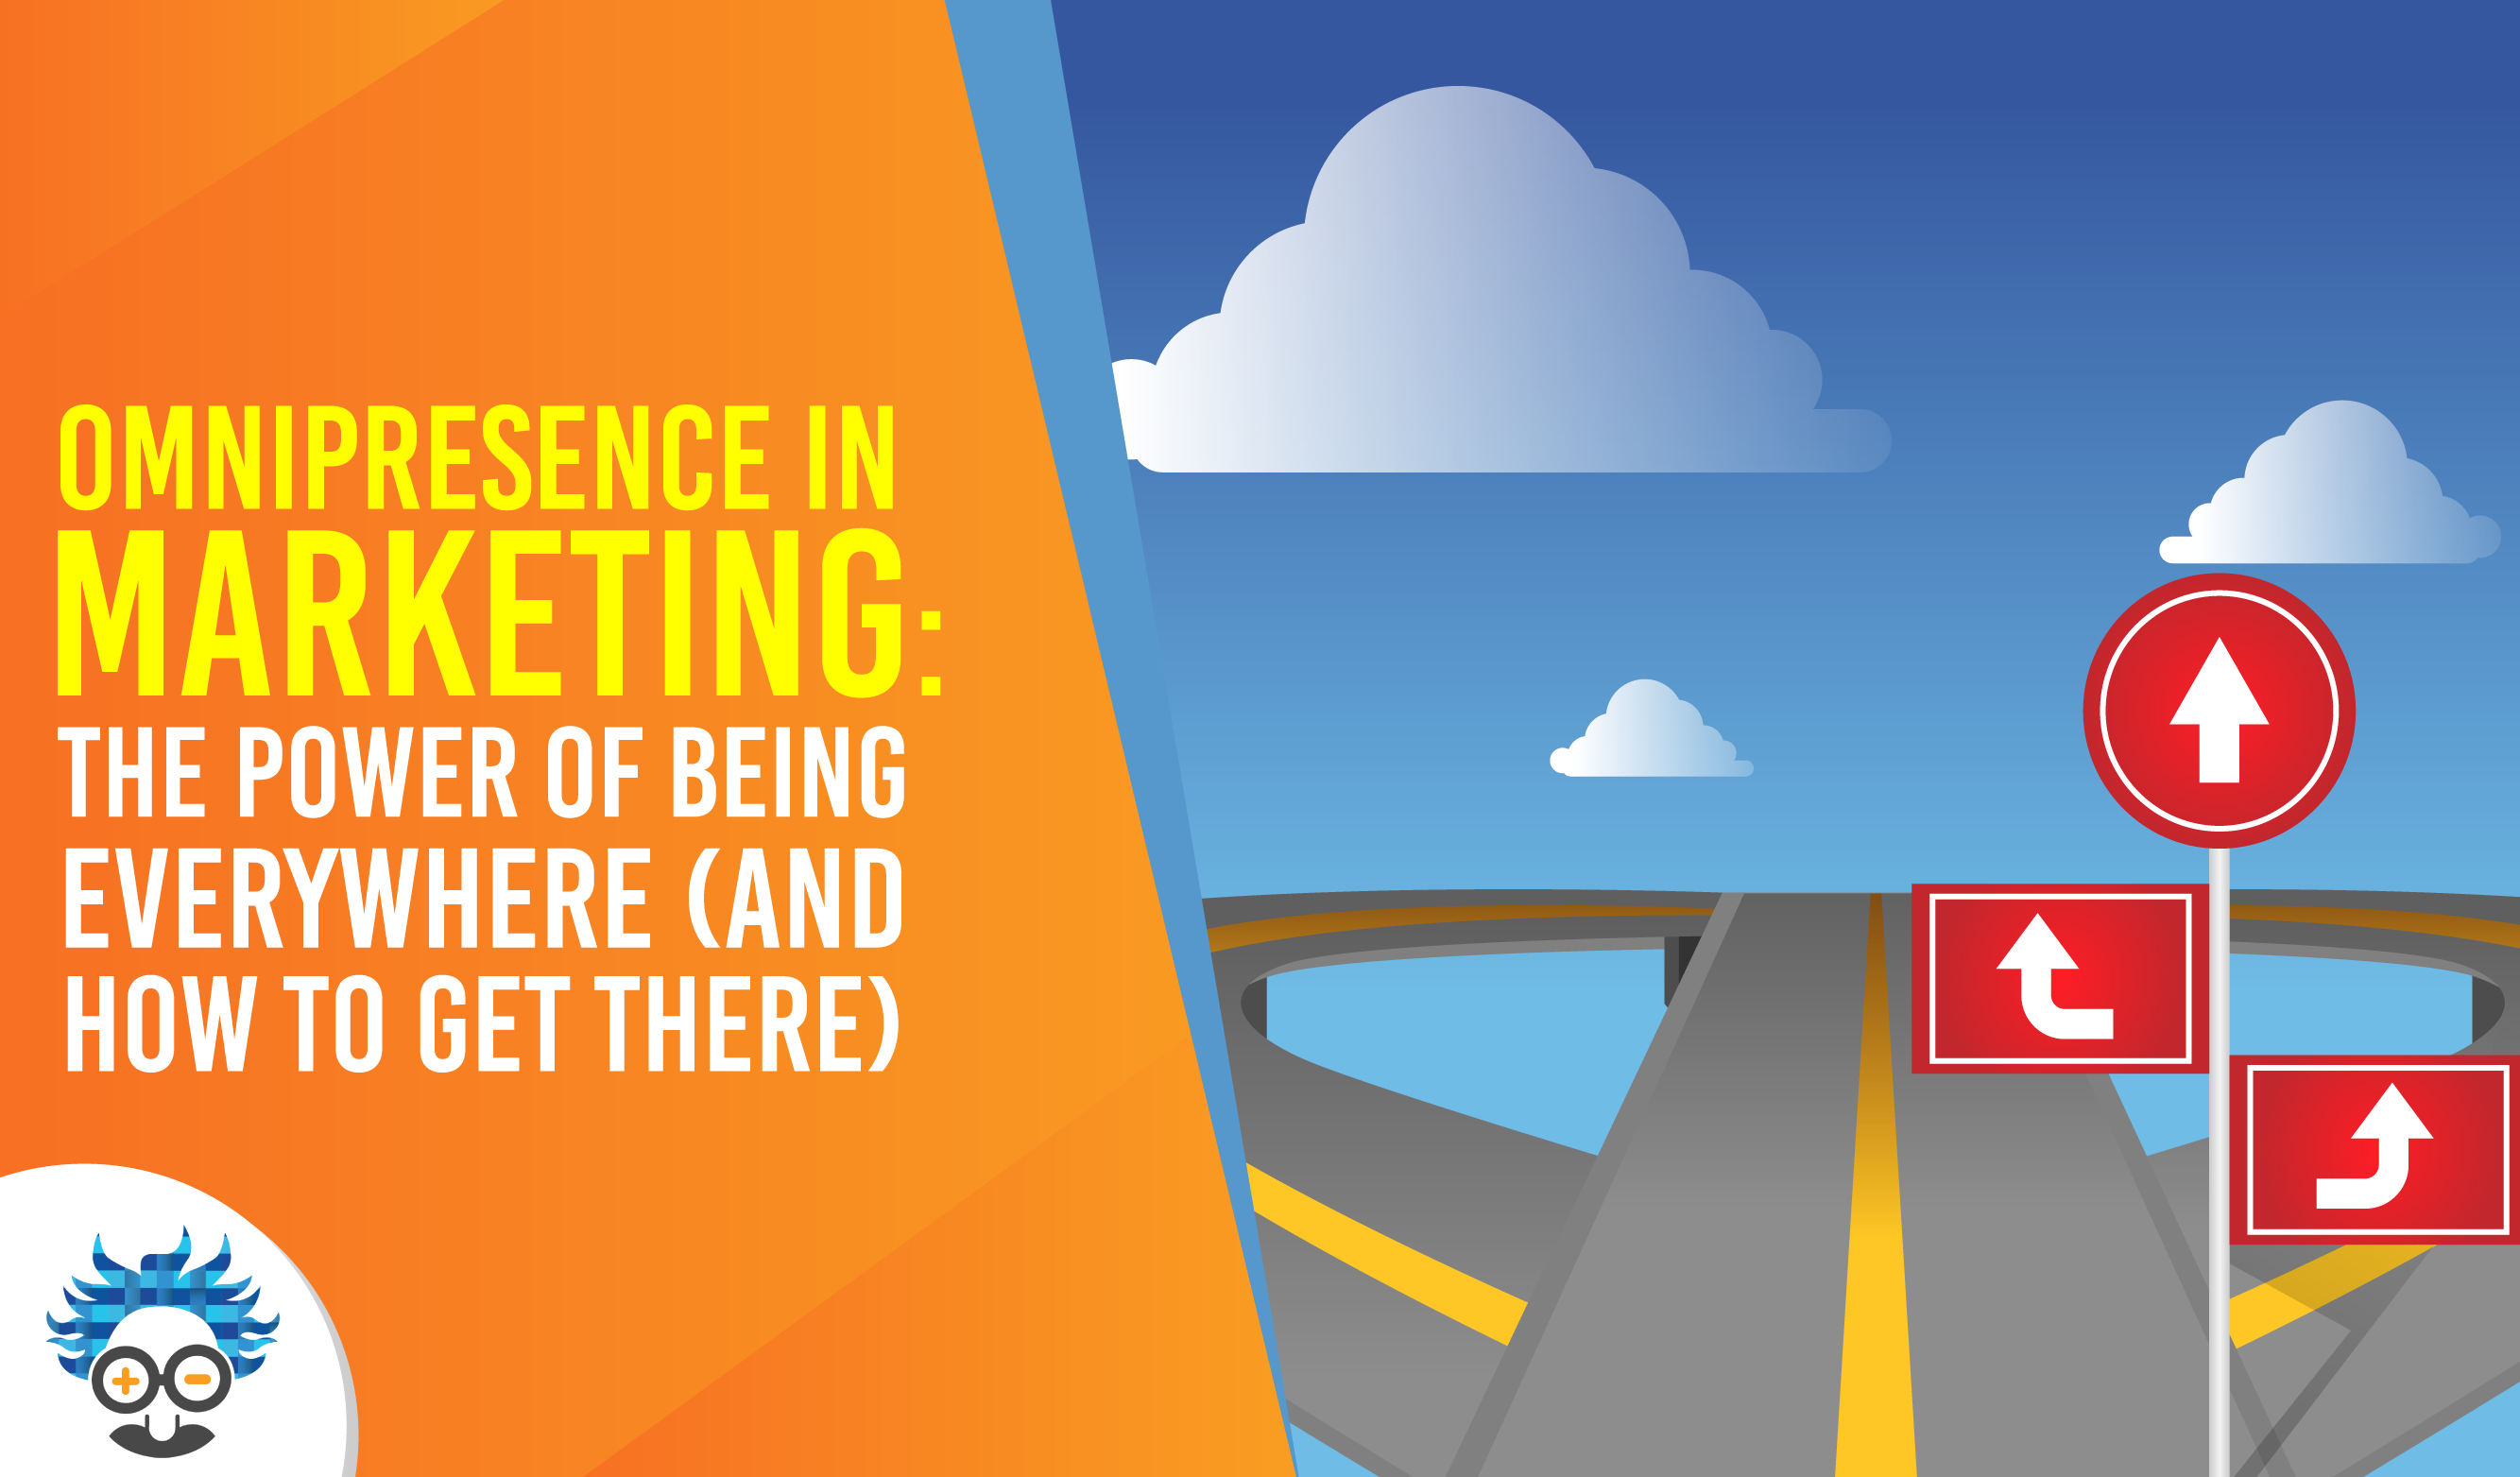 omnipresence in marketing